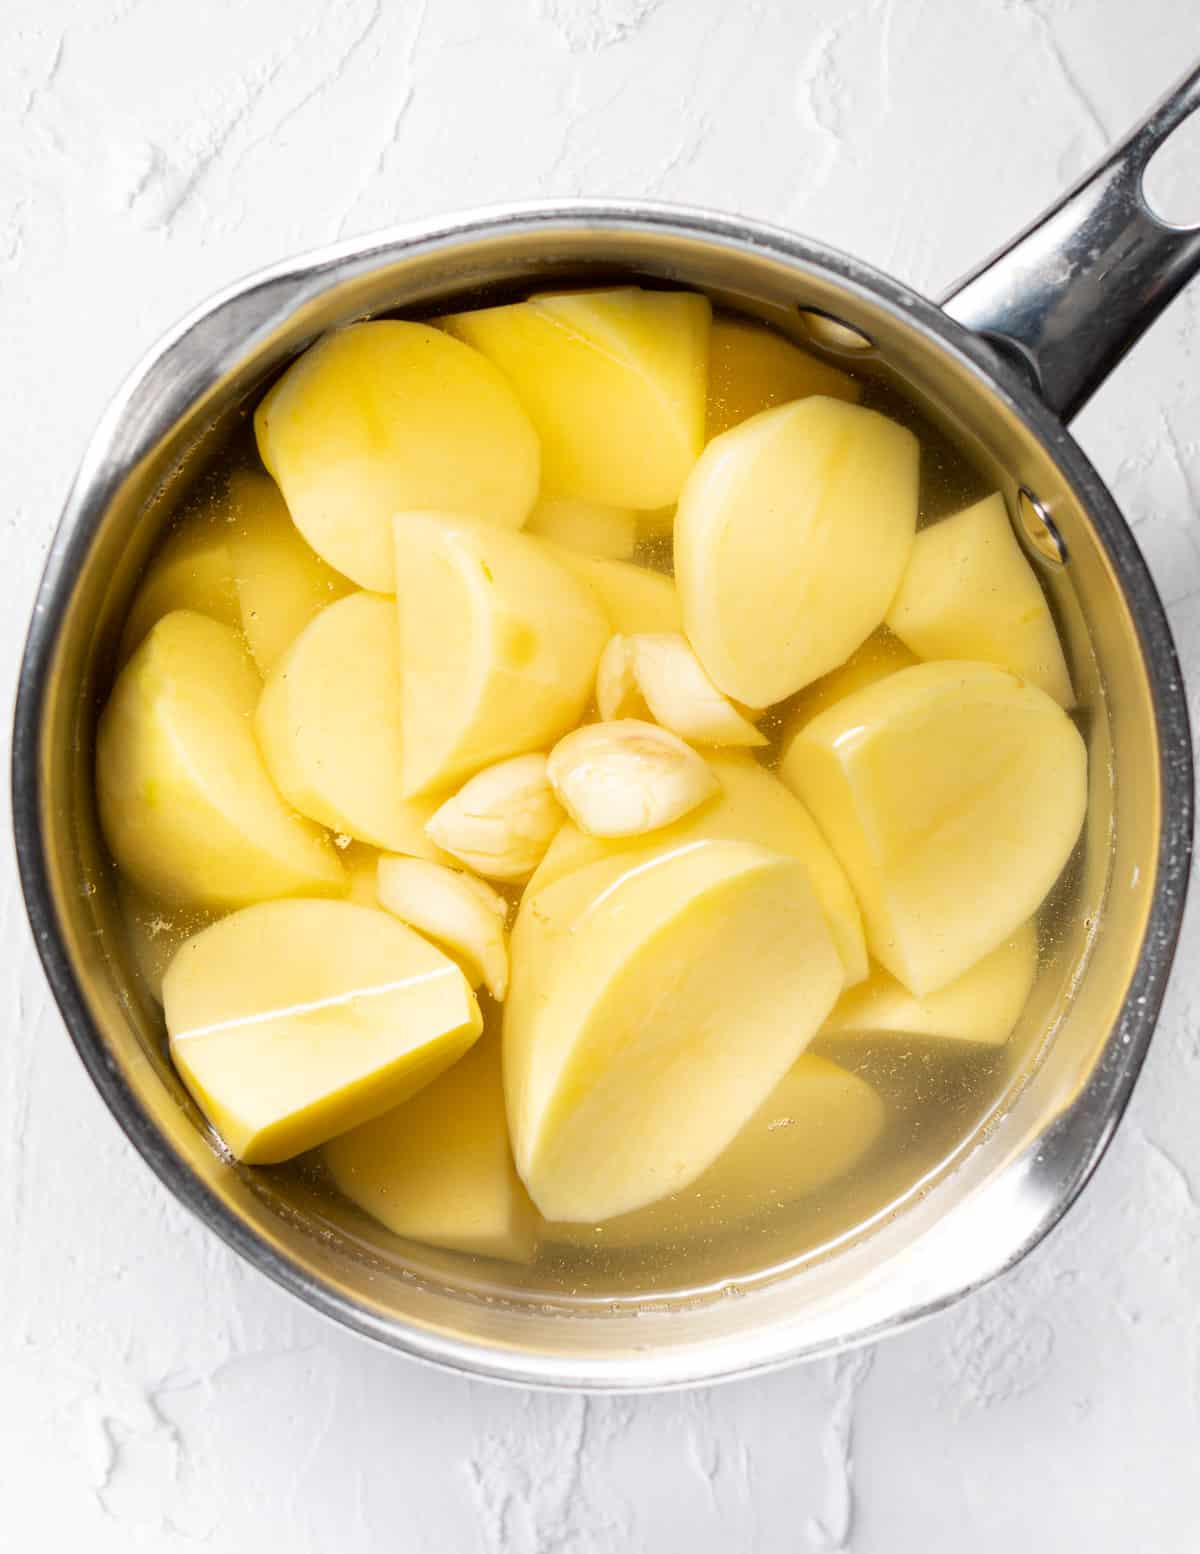 potatoes and garlic in a pan of water